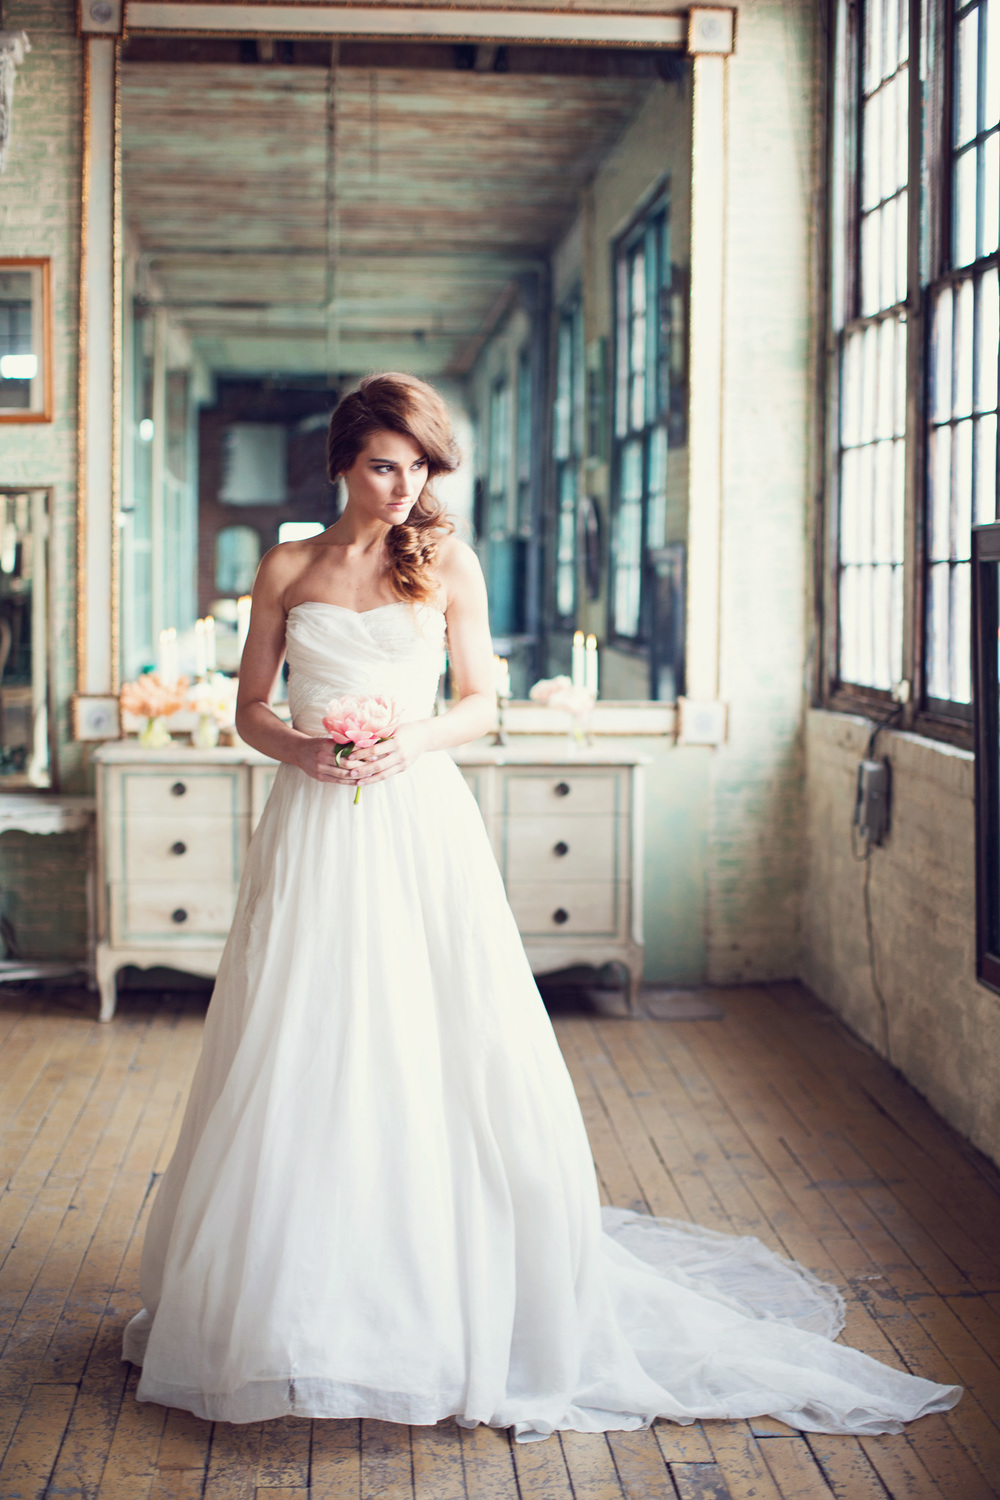 bride-flowy-gown-unstructured-sophisticated-metropolitan-building